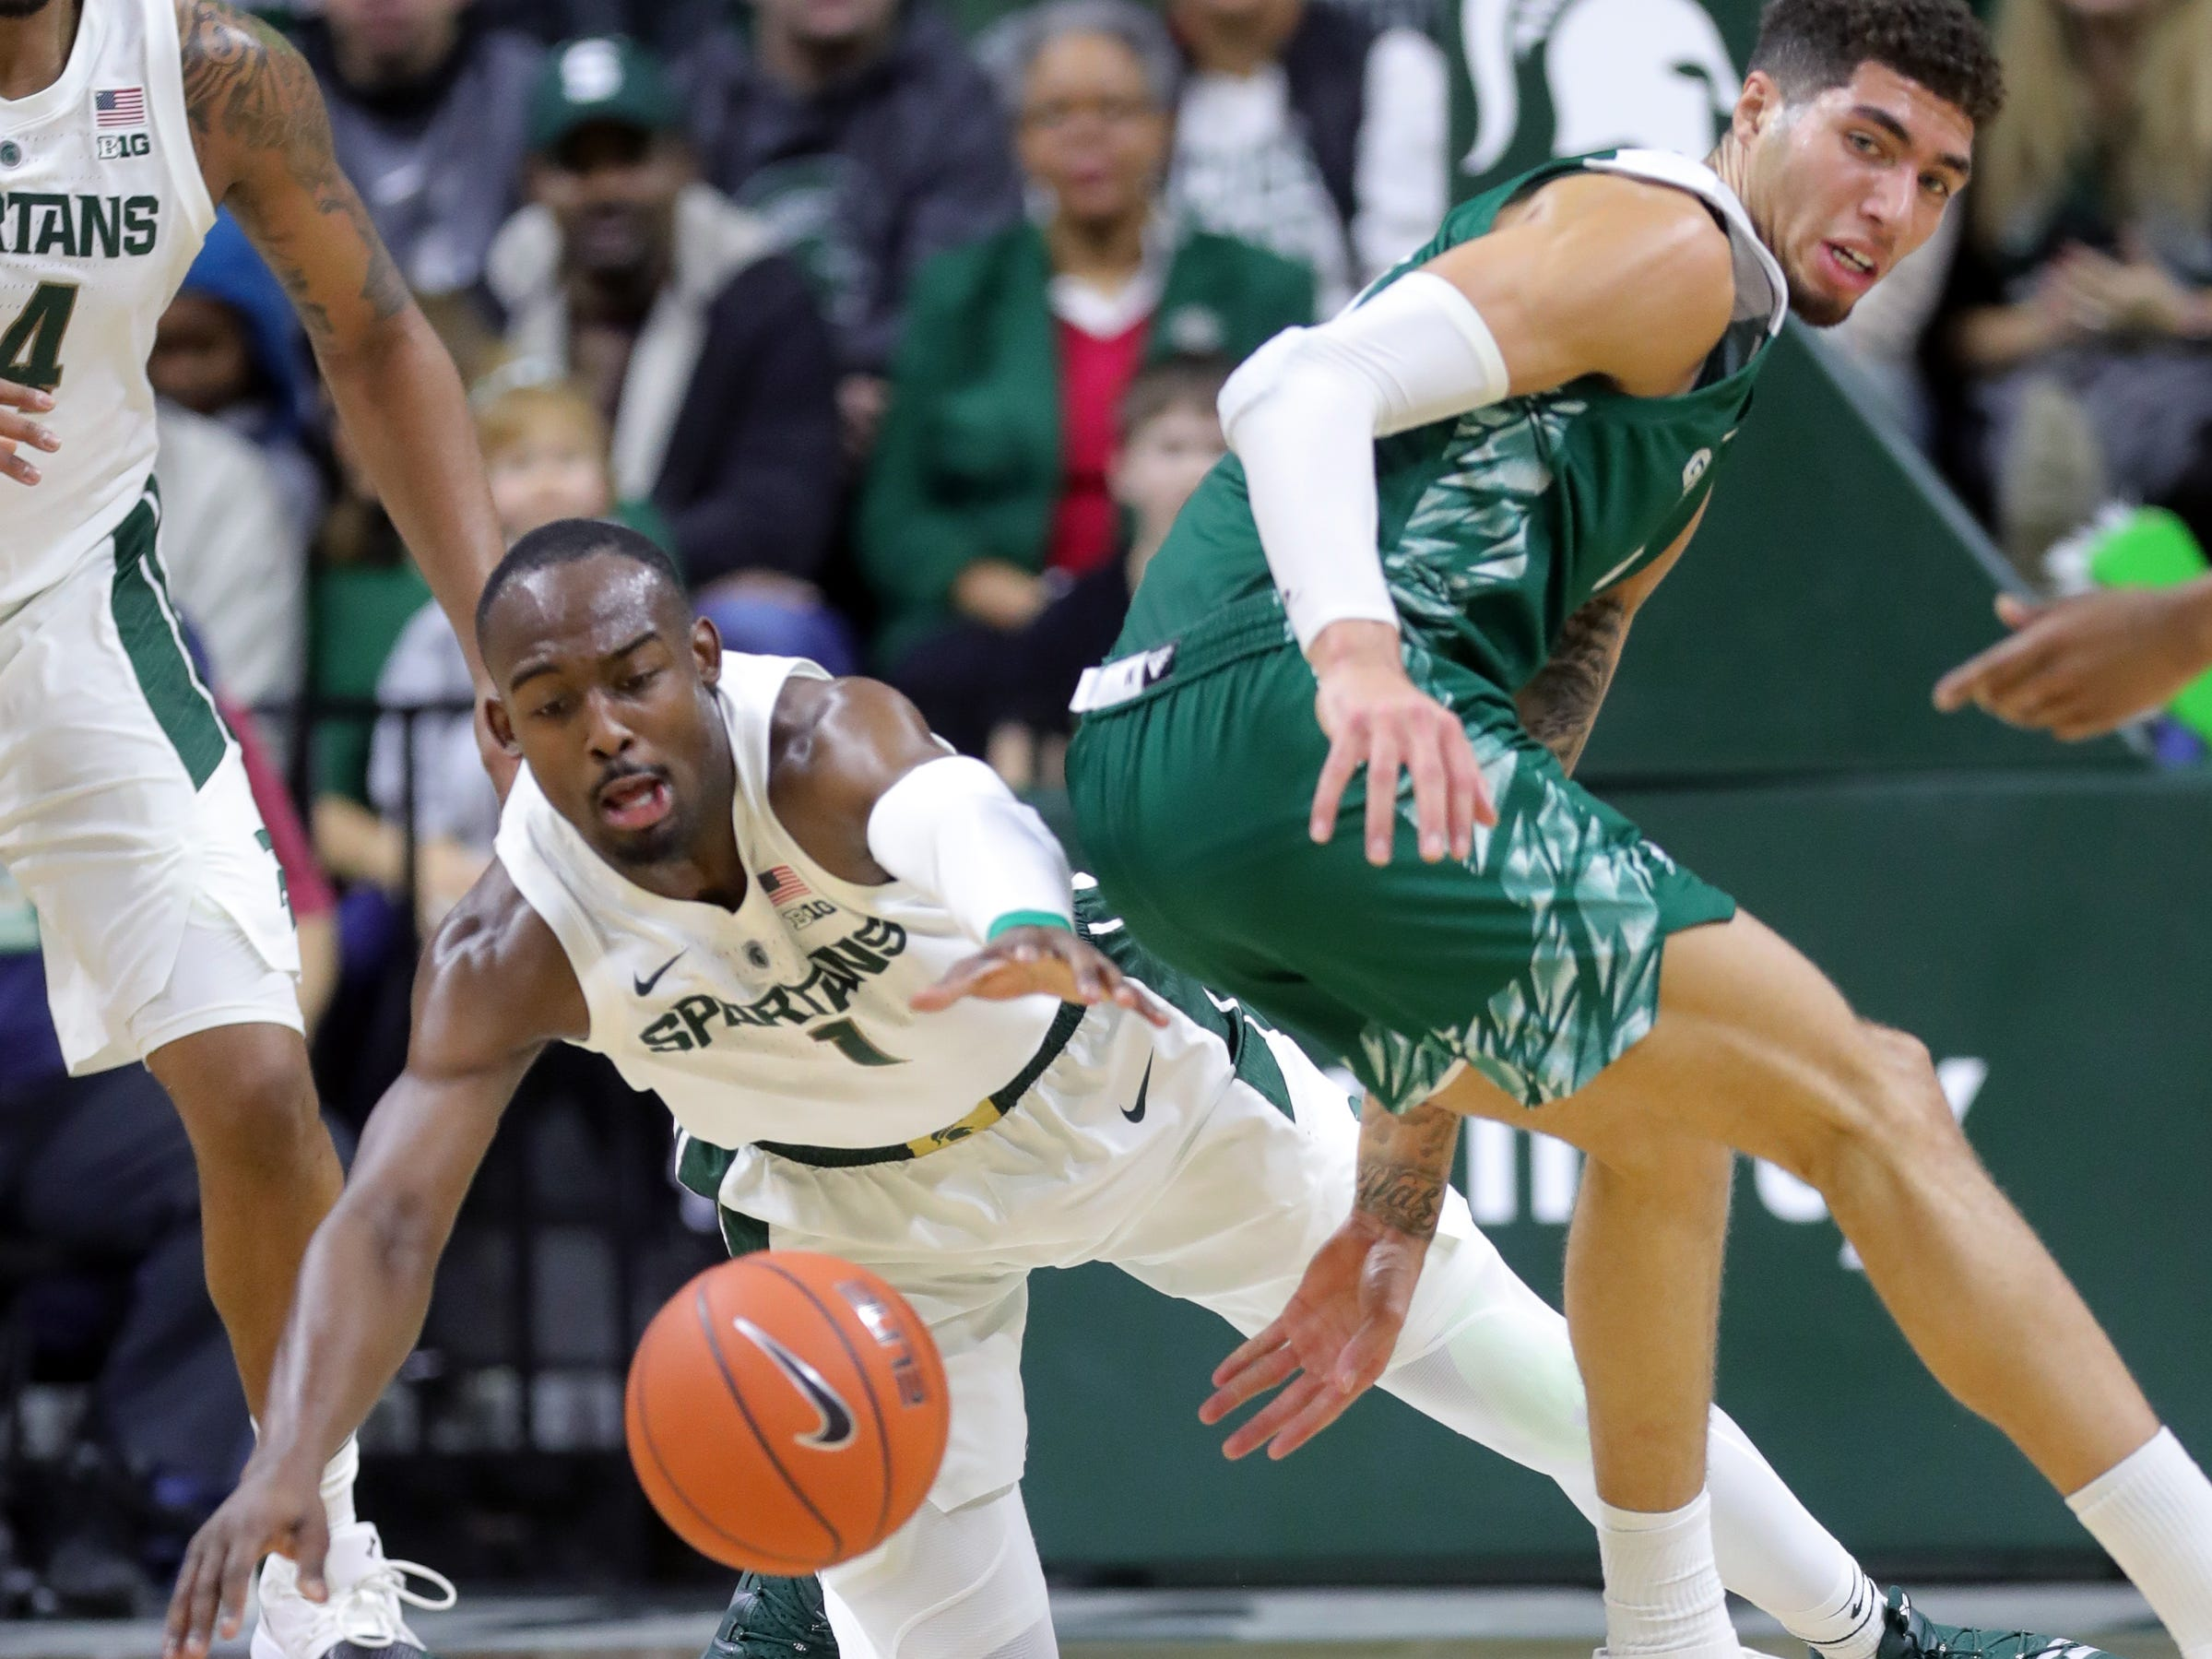 Michigan State guard Joshua Langford dives for the loose ball against Green Bay guard Sandy Cohen III during the first half Sunday, Dec. 16, 2018 at the Breslin Center in East Lansing.